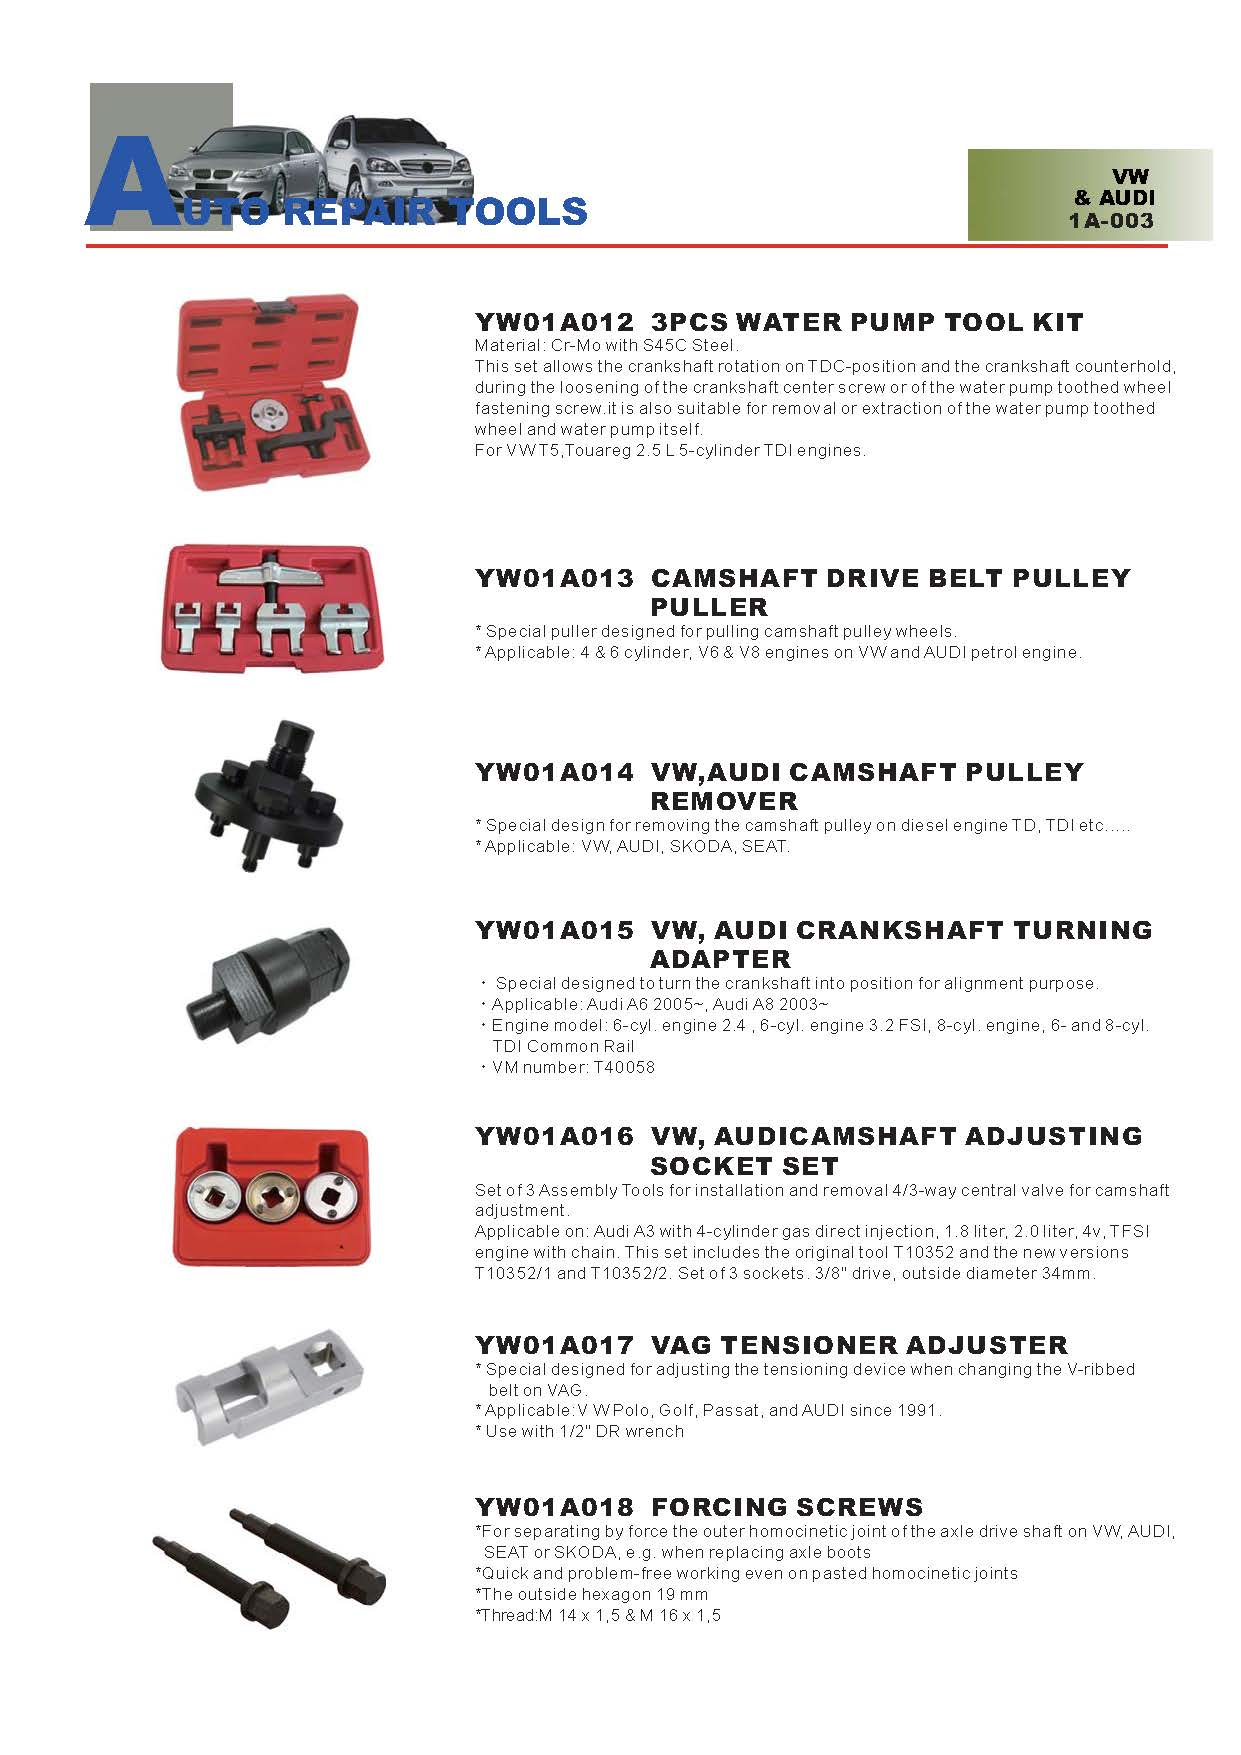 Years Way Auto Repair Tools - VW & AUDI Special Tools